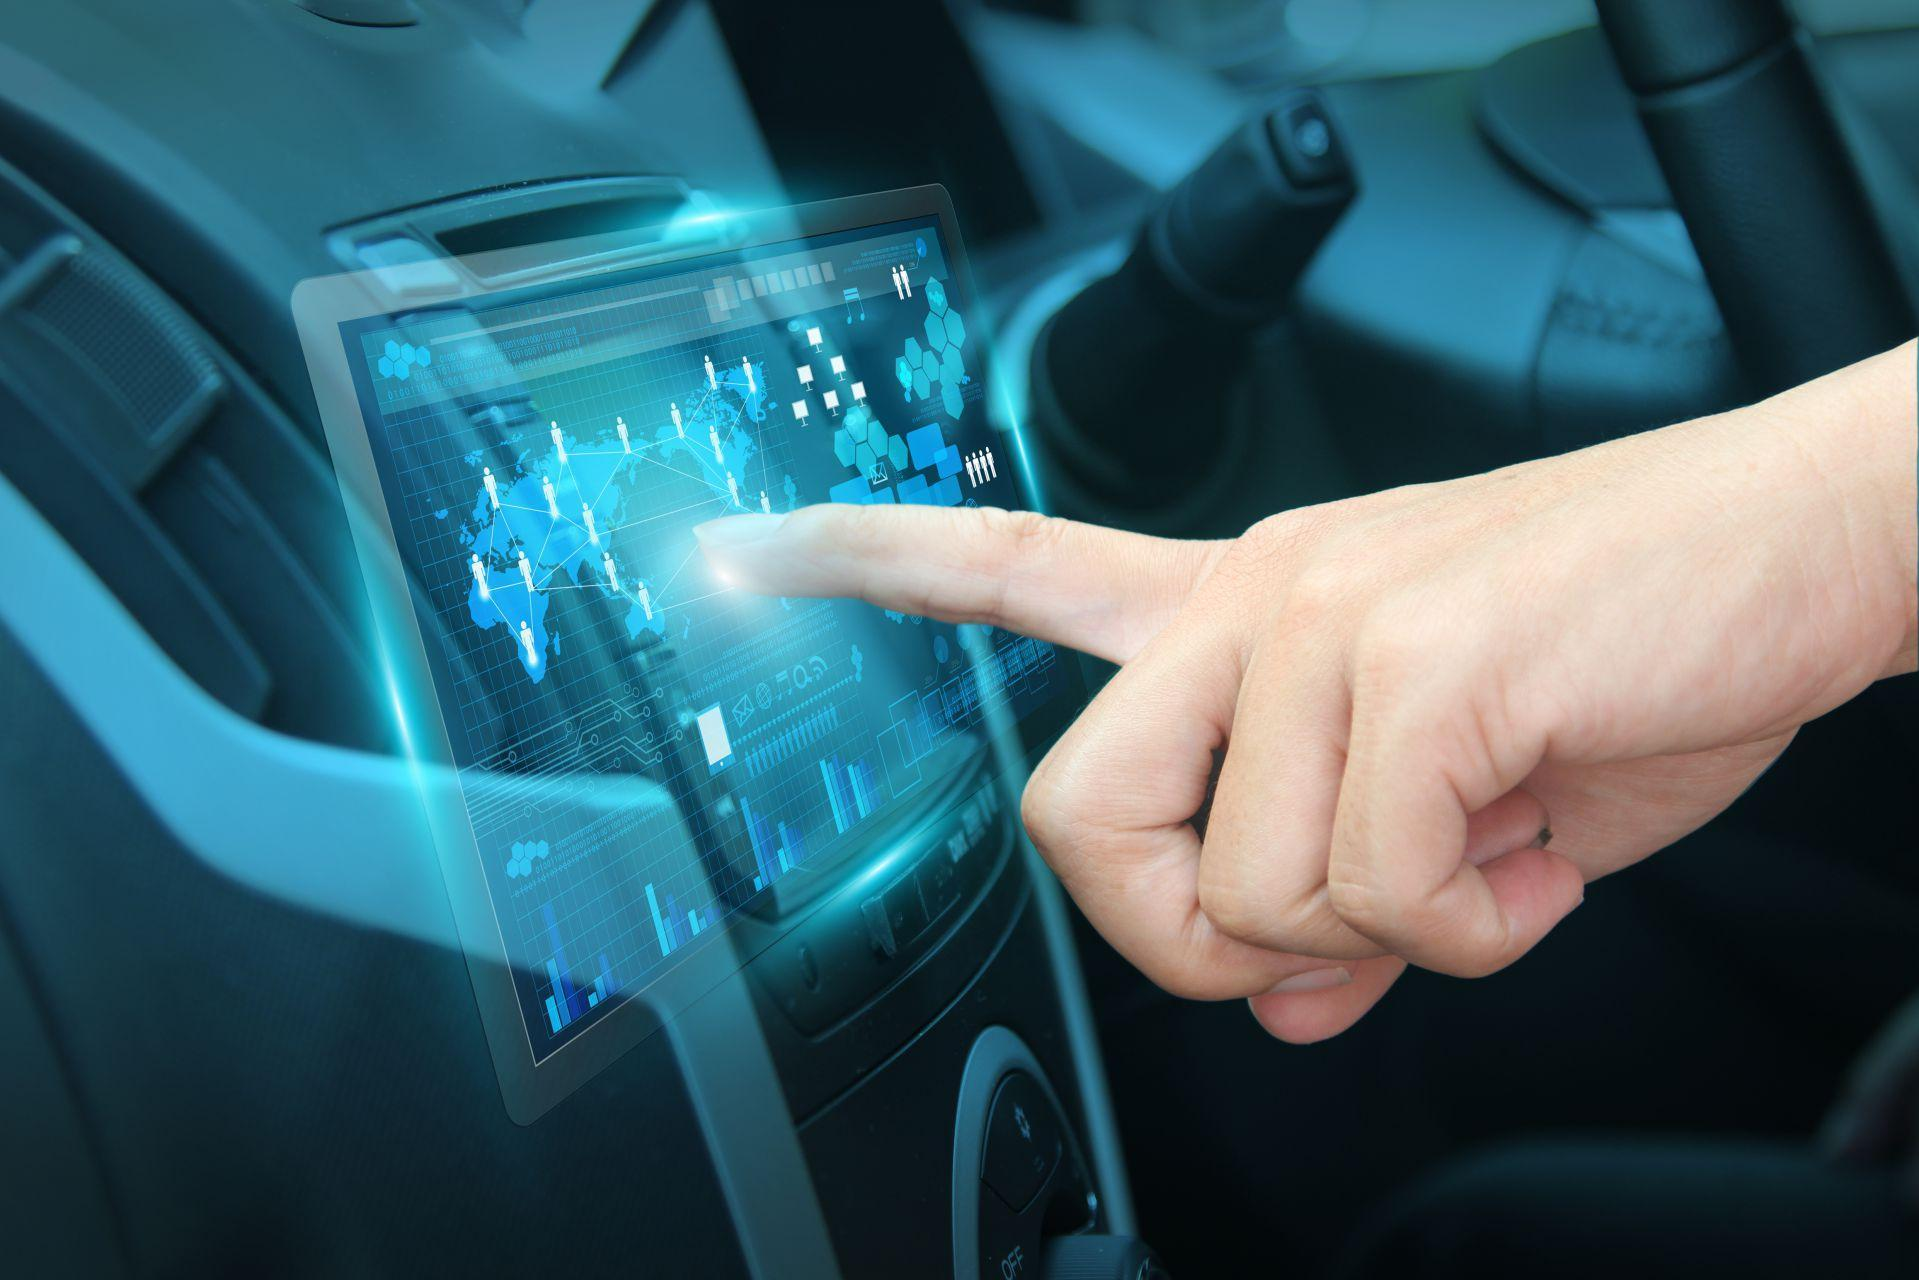 Automotive Customer More Likely to Abondon Brand over Cyber Security Breach